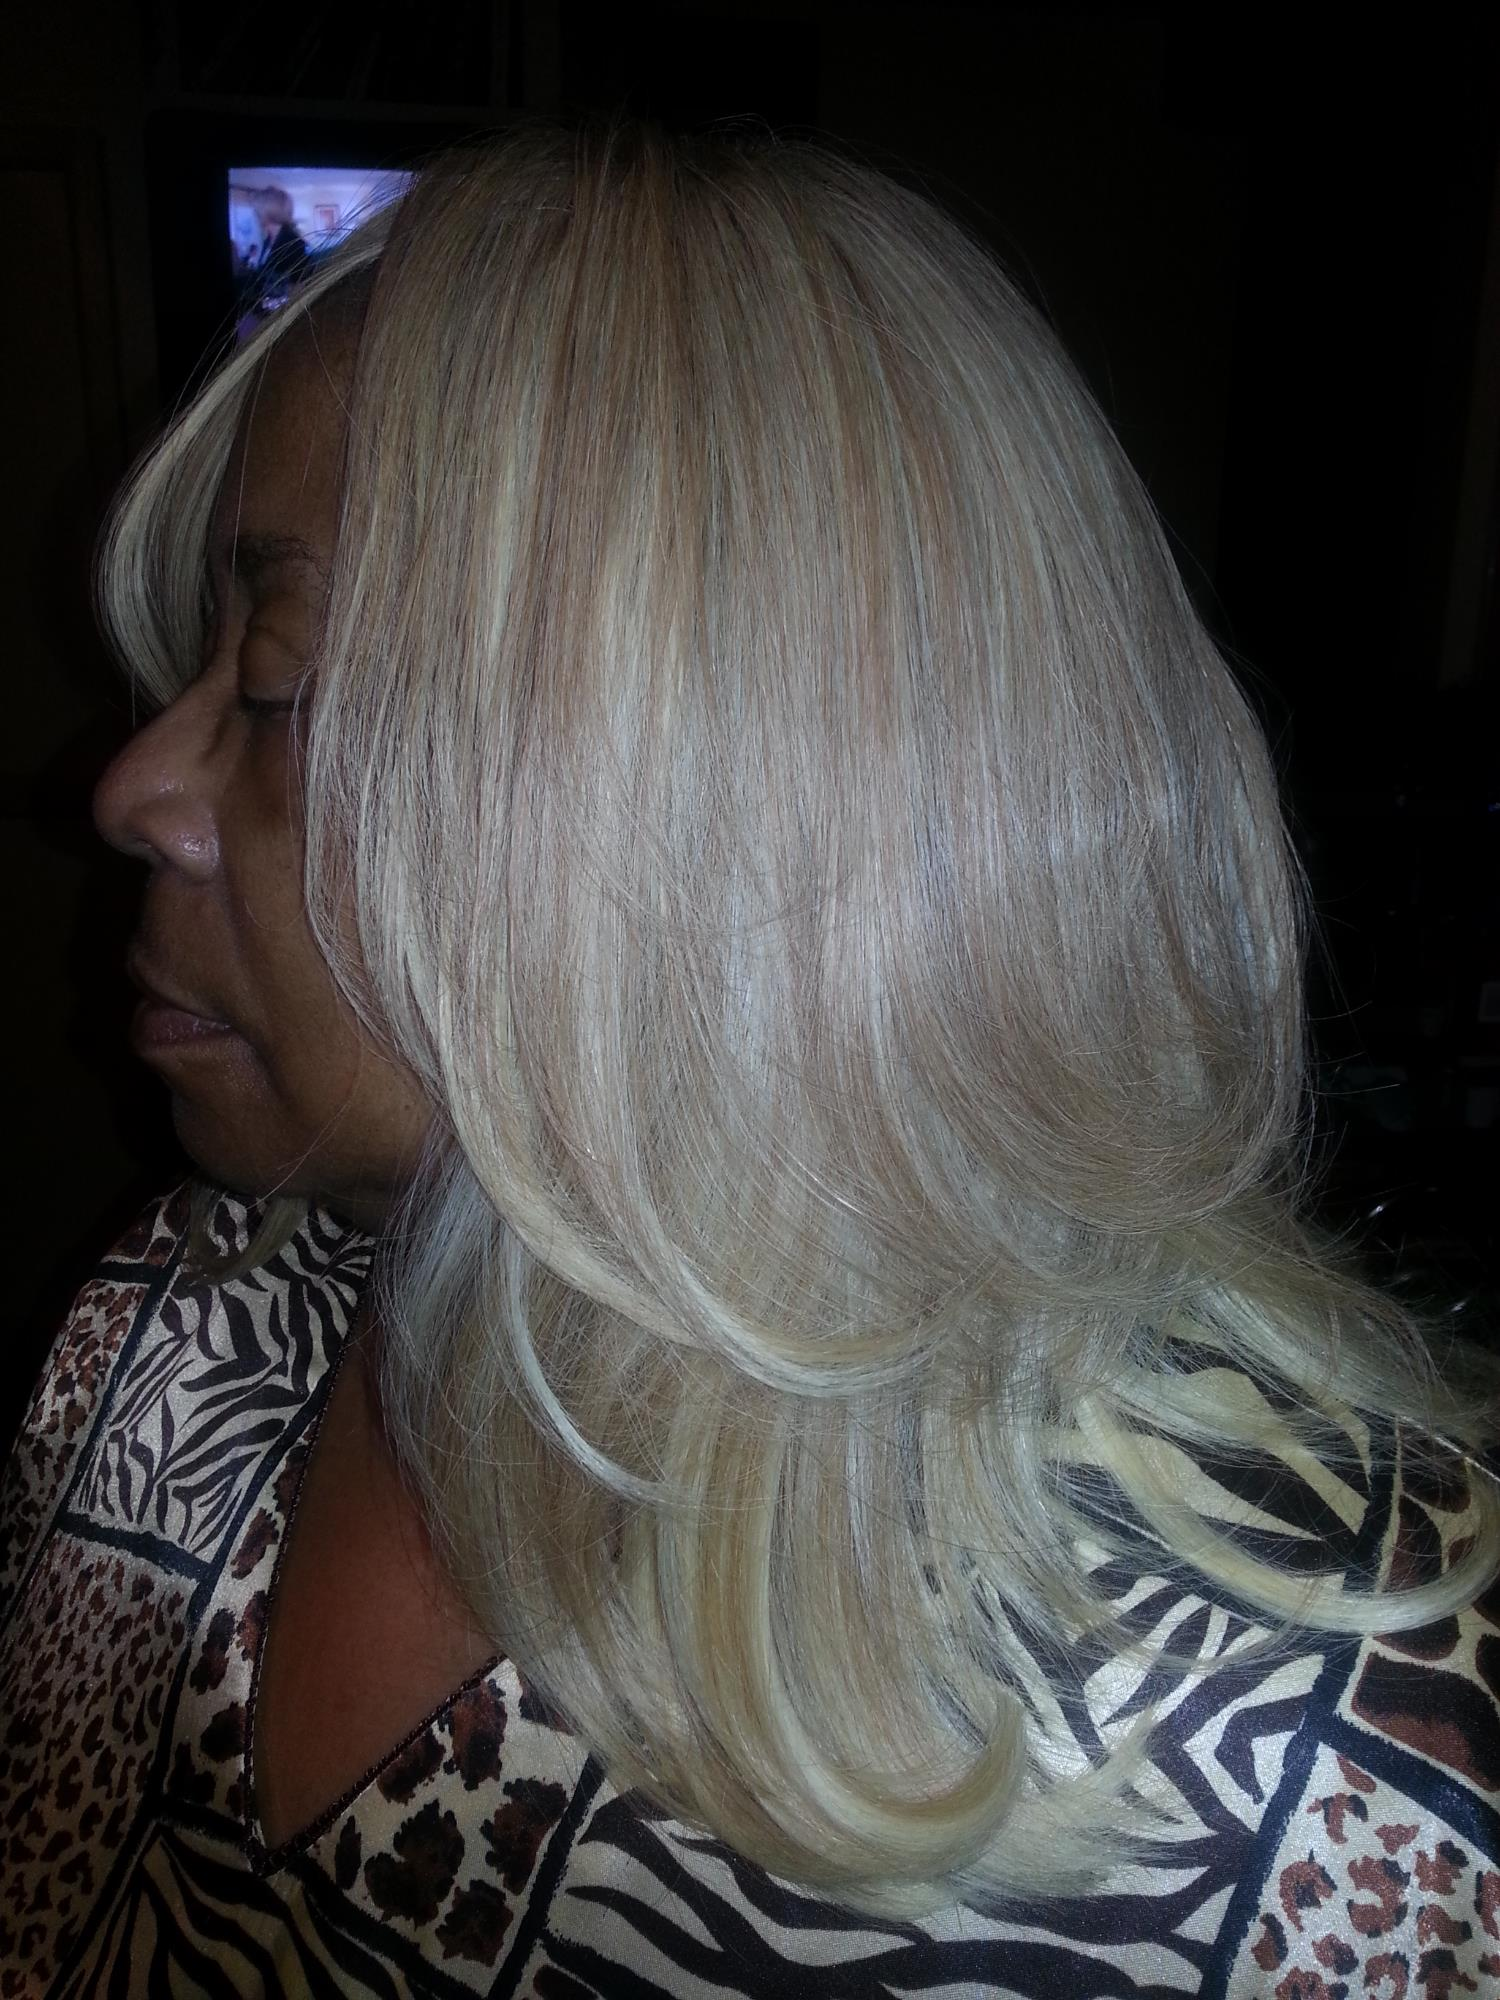 Mohawk Sew In Weave Images | Crazy Gallery